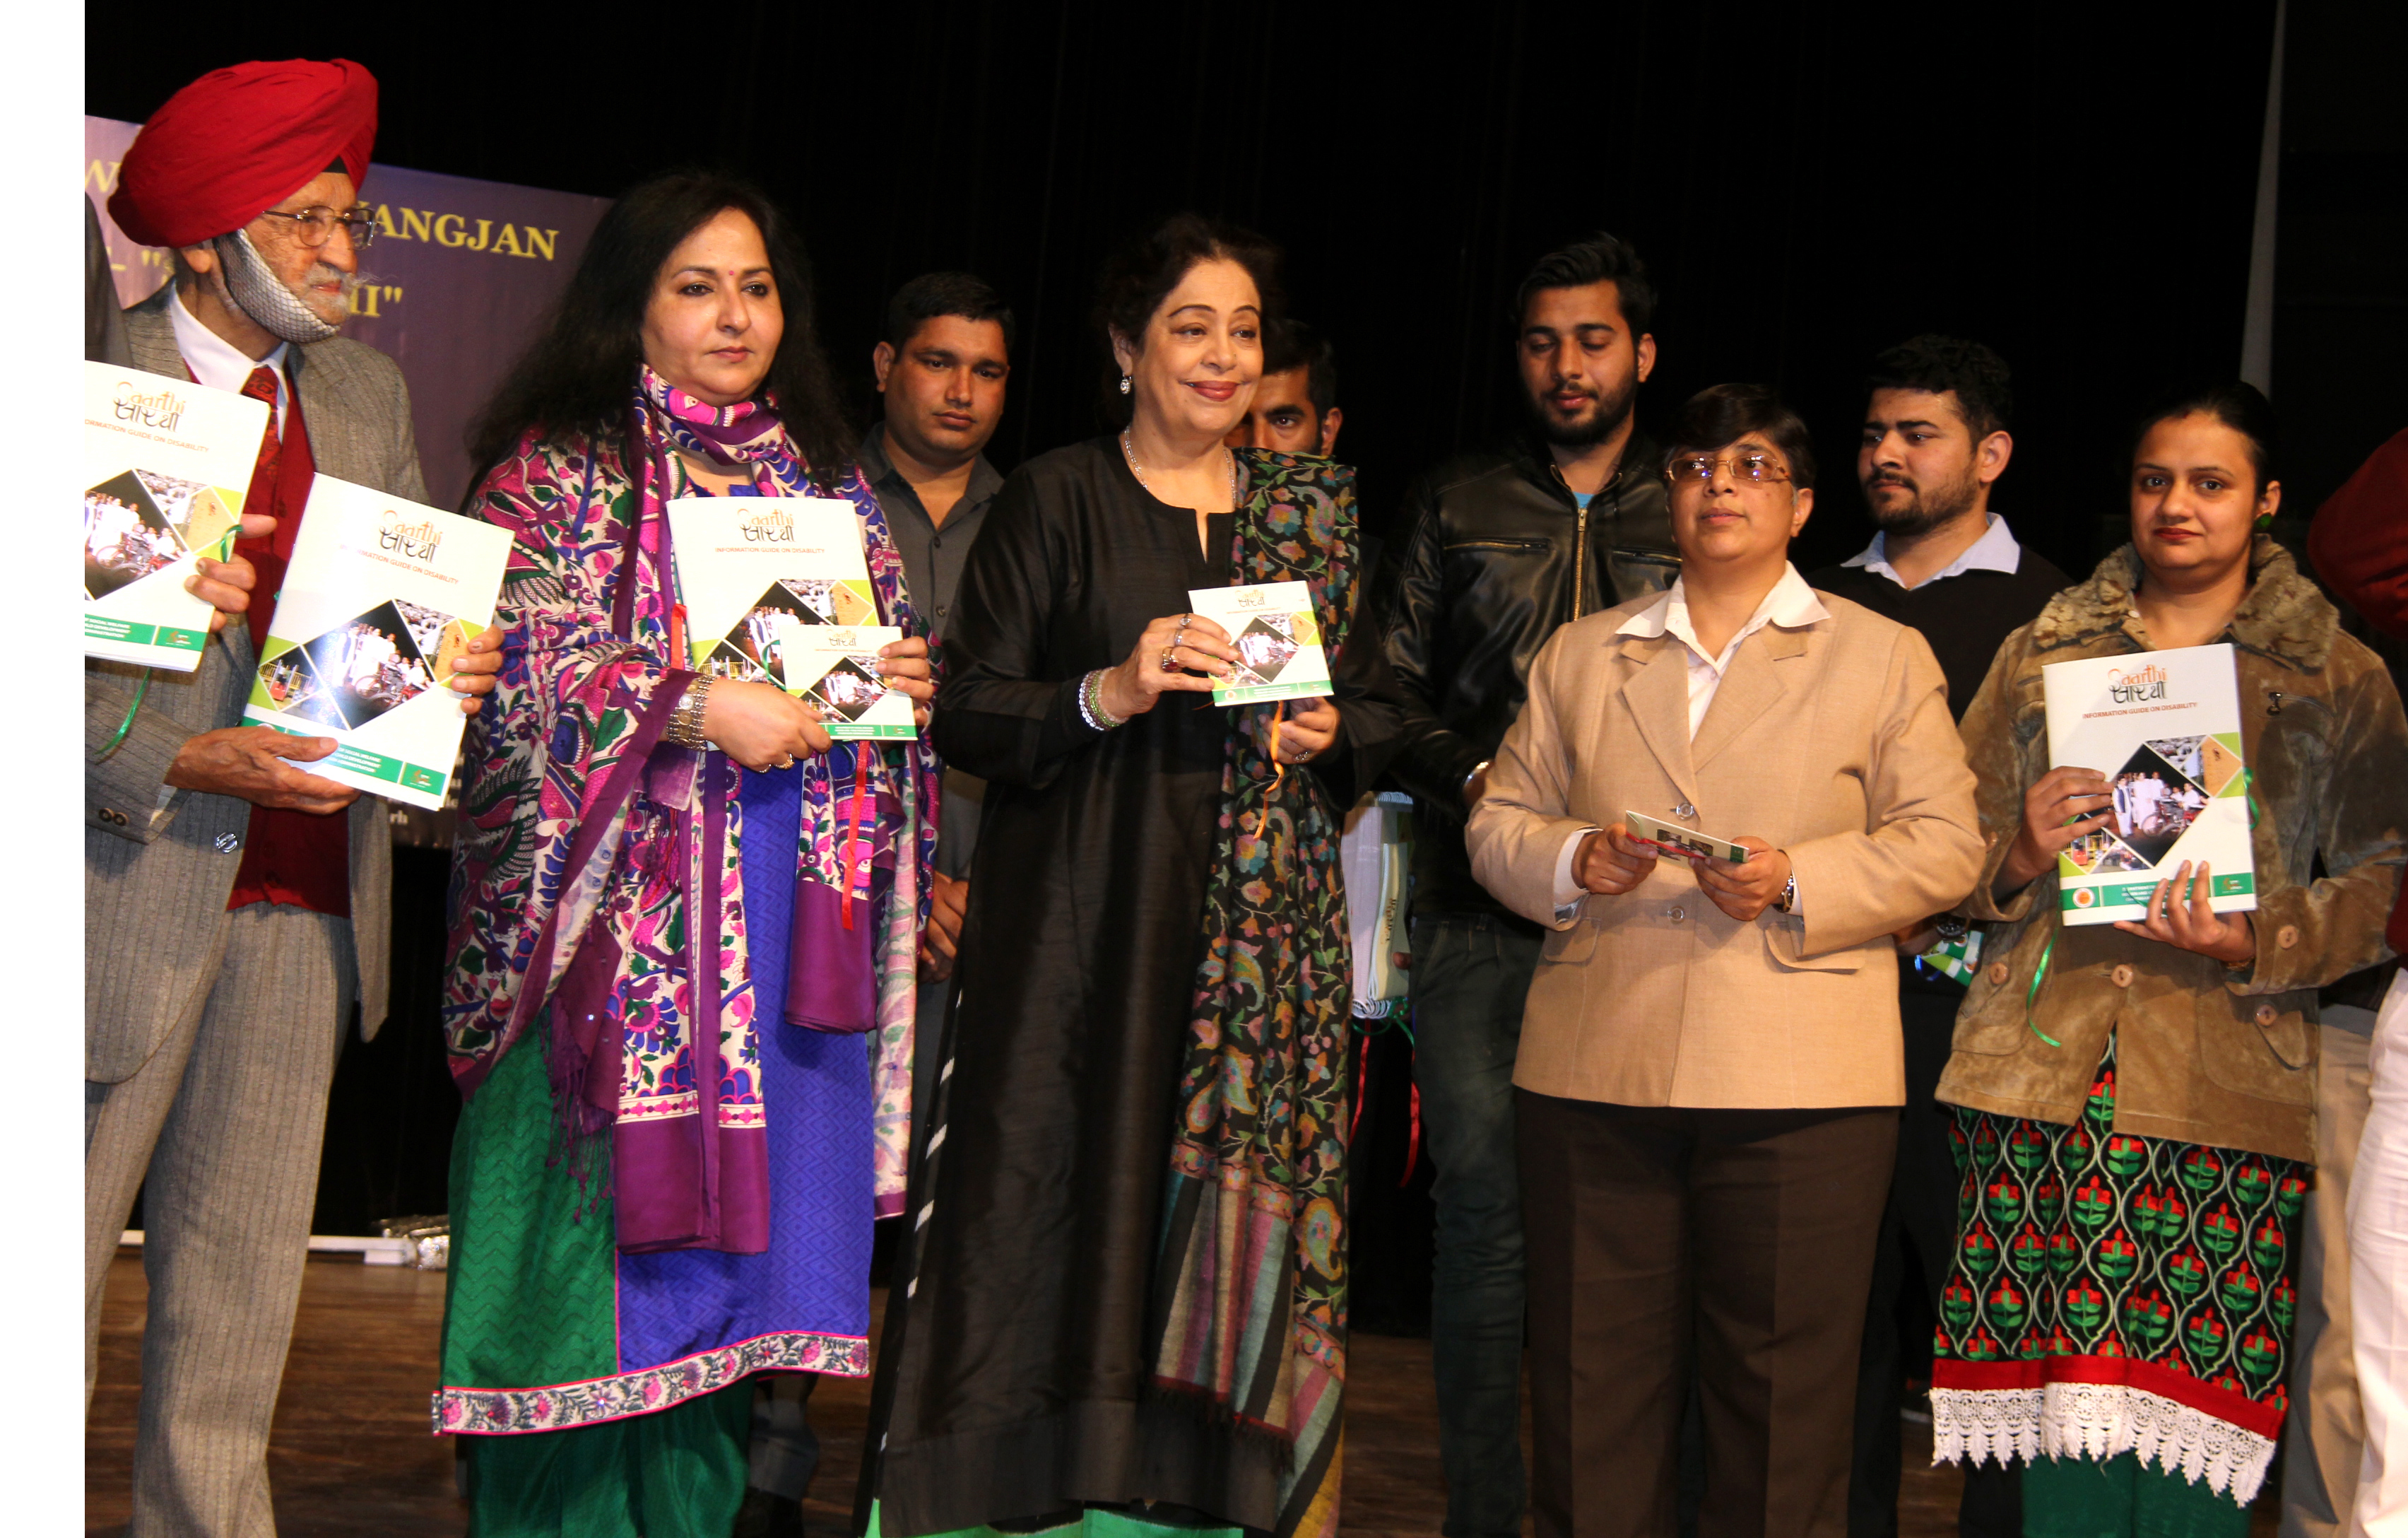 Smt. Kirron Kher, Member of Parliament, Chandigarh alongwith senior officers releasing of Booklet SAARTHI in  the Fashion Show for Divyangjan at Tagore Theatre, Sector-18, Chandigarh on Monday, January 23, 2017.